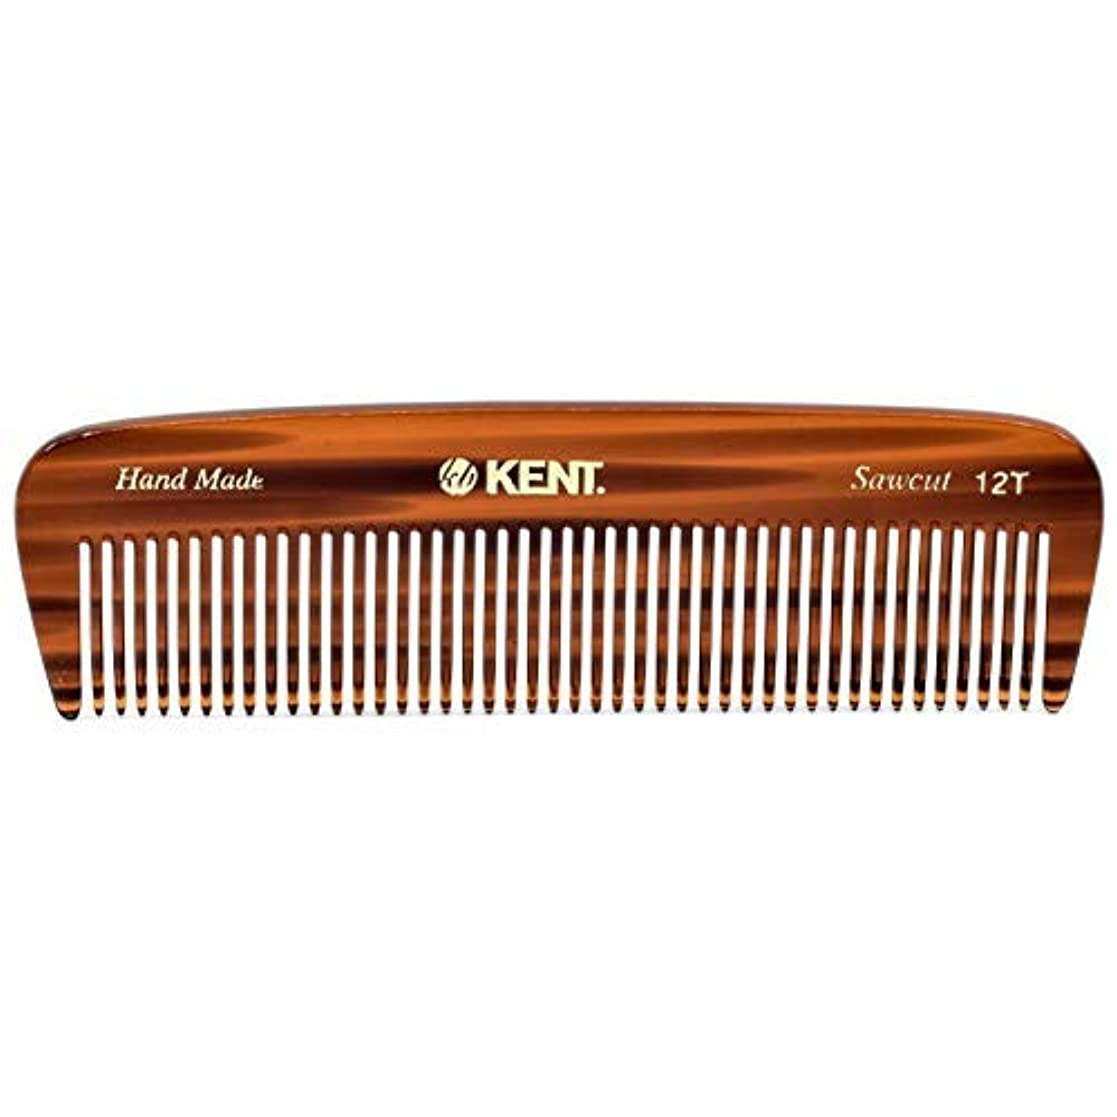 文明化手のひら湾Kent 12T Handmade Medium Size Teeth for Thick/Coarse Hair Comb for Men/Women - For Grooming, Styling, and Detangling...